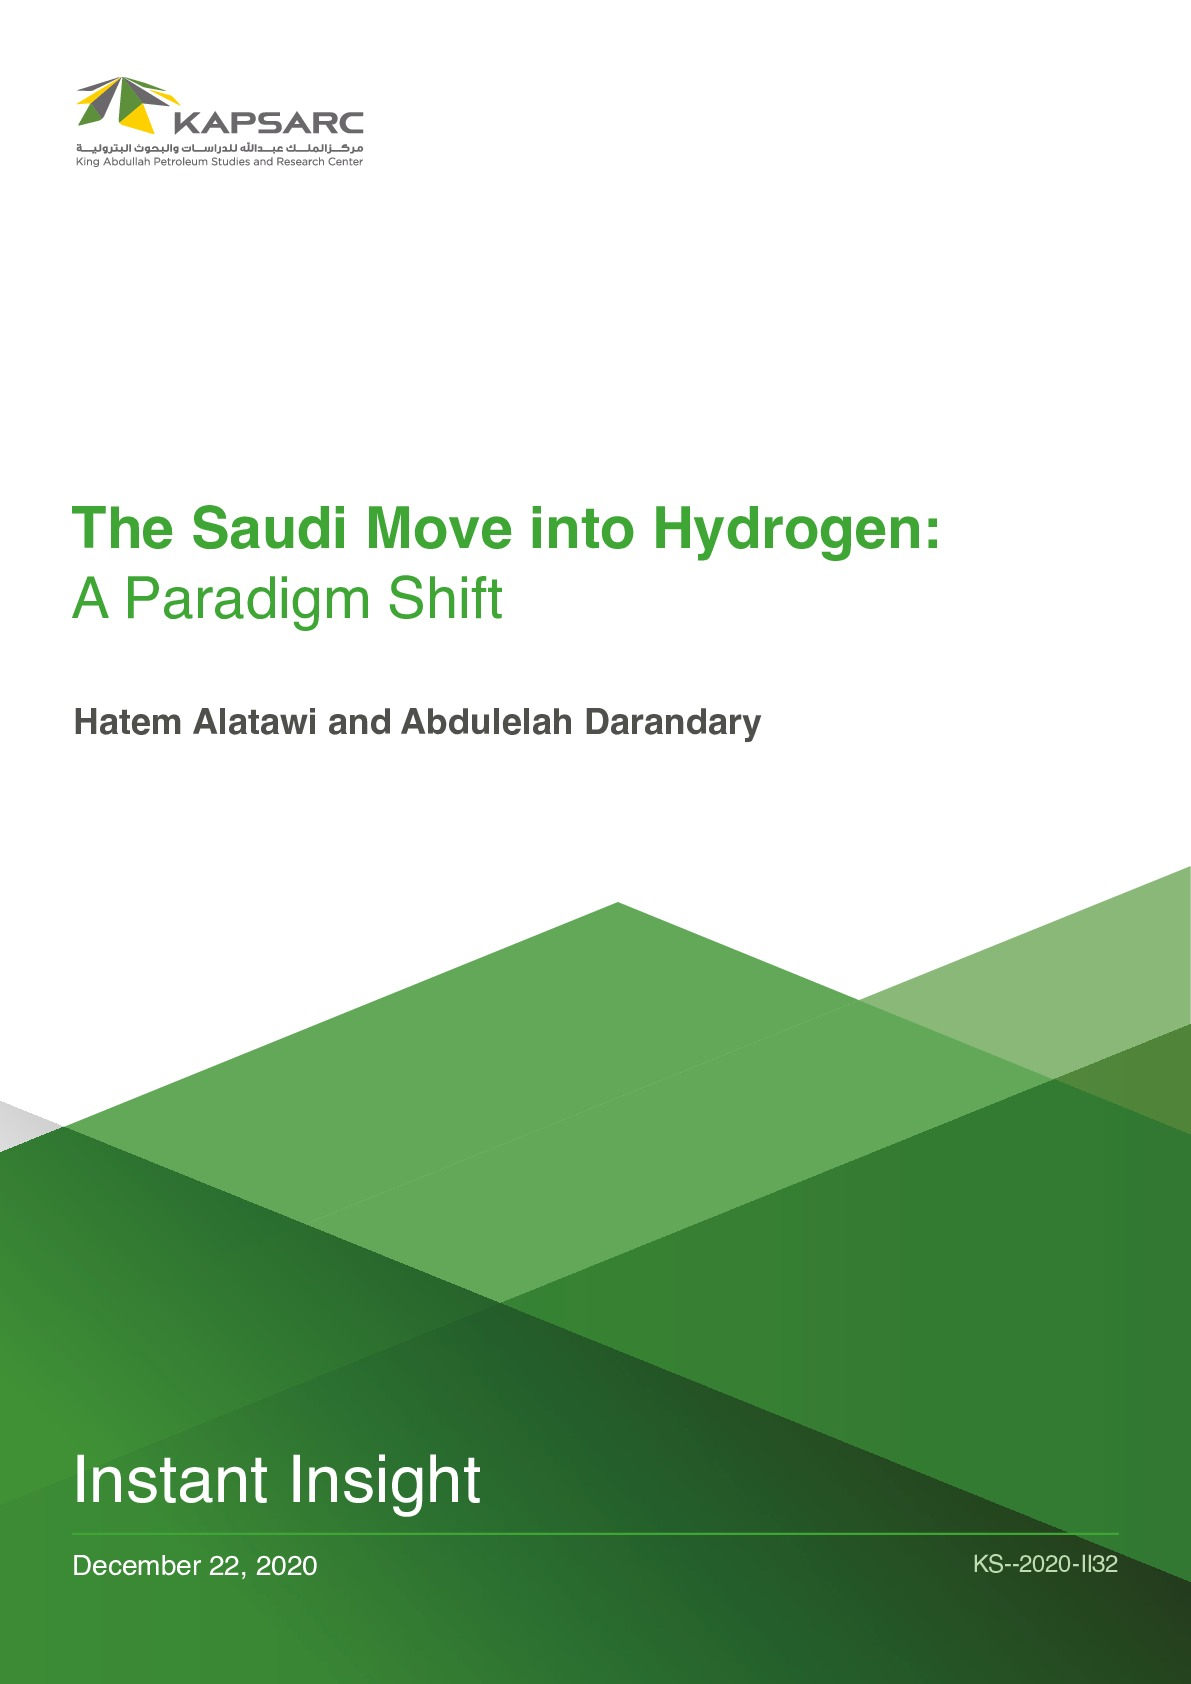 The Saudi Move into Hydrogen: A Paradigm Shift